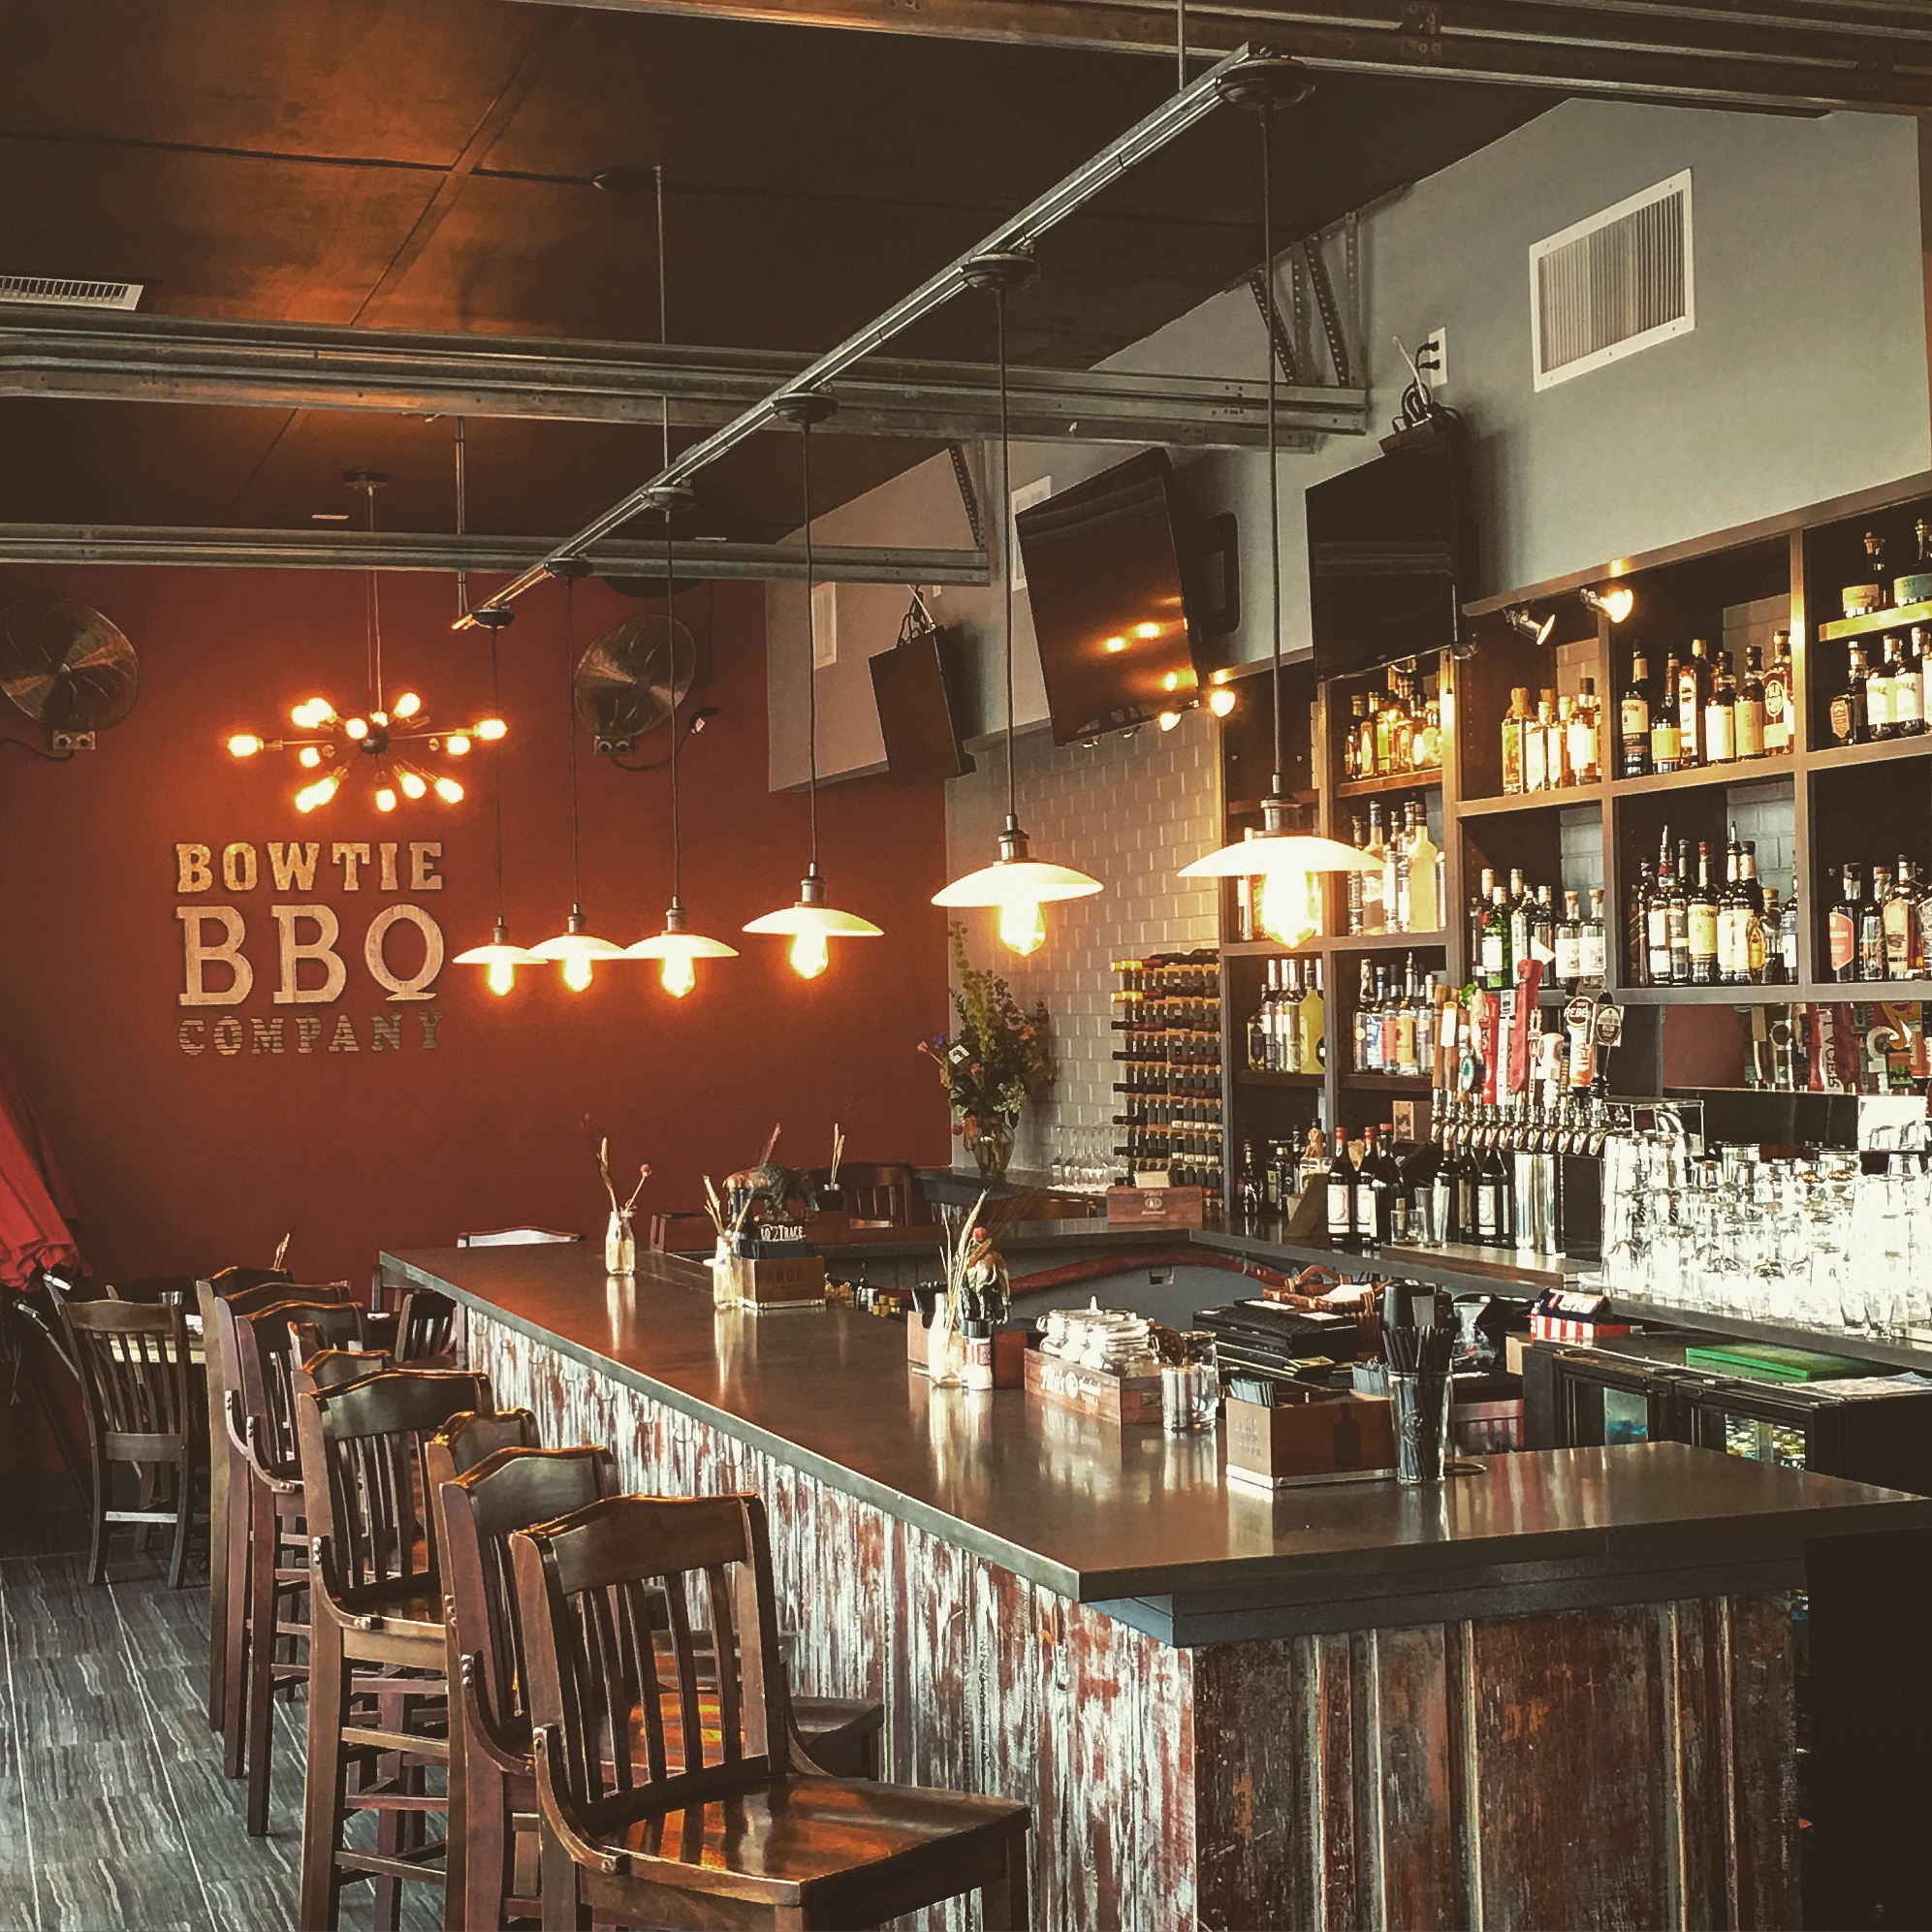 The brand new bar area at Bowtie BBQ Co. sports a massive bourbon collection